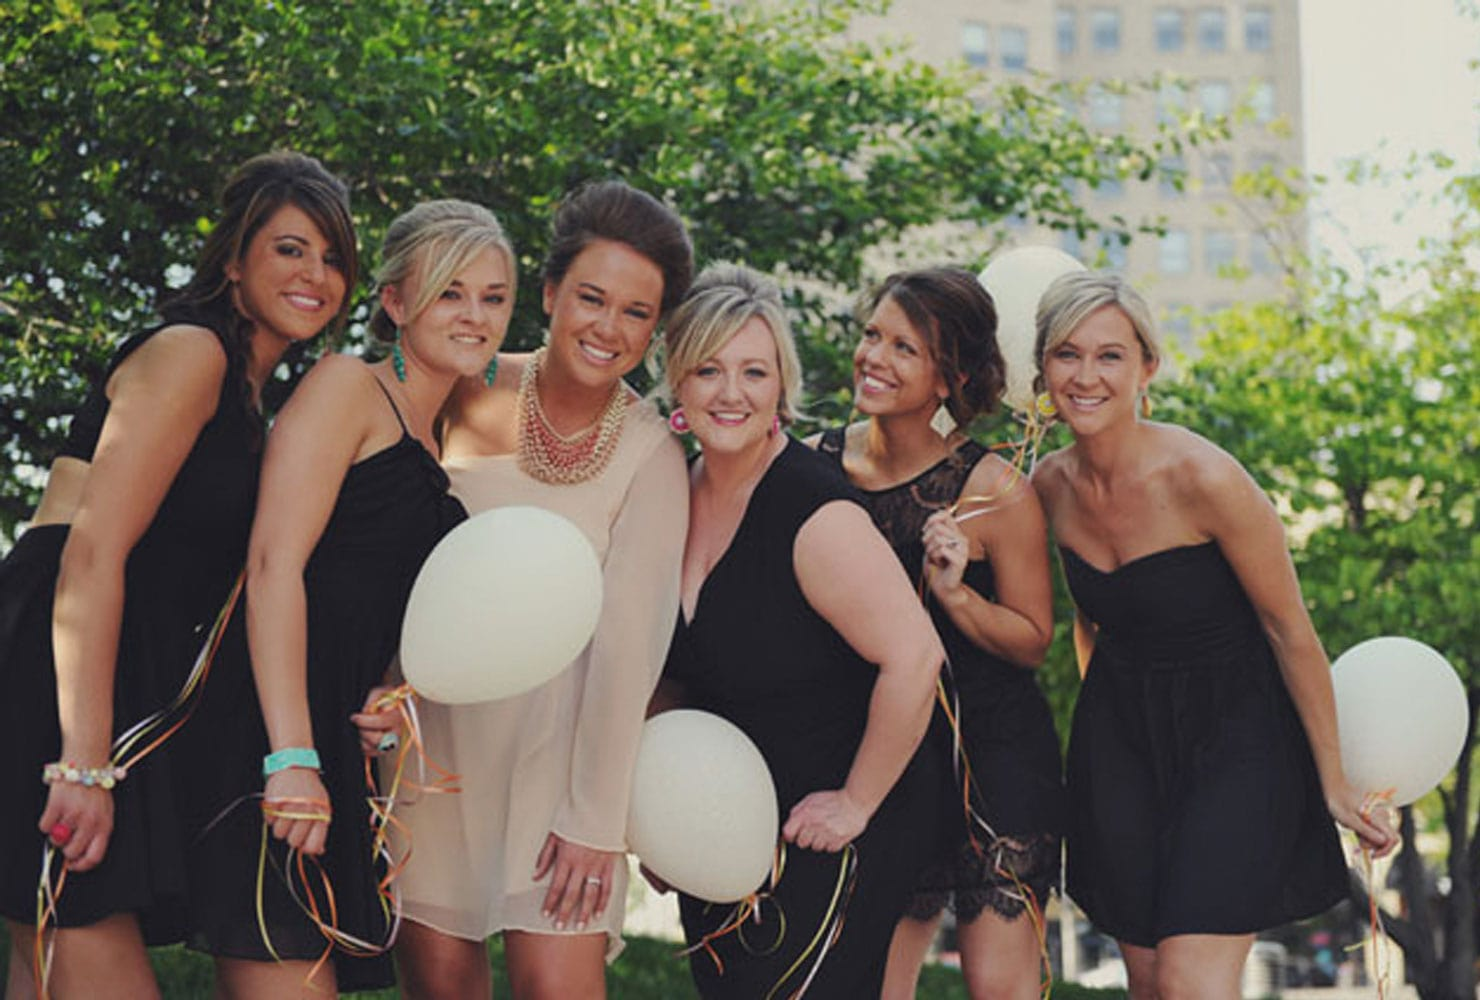 Bridal party in black and nude dresses with white balloons